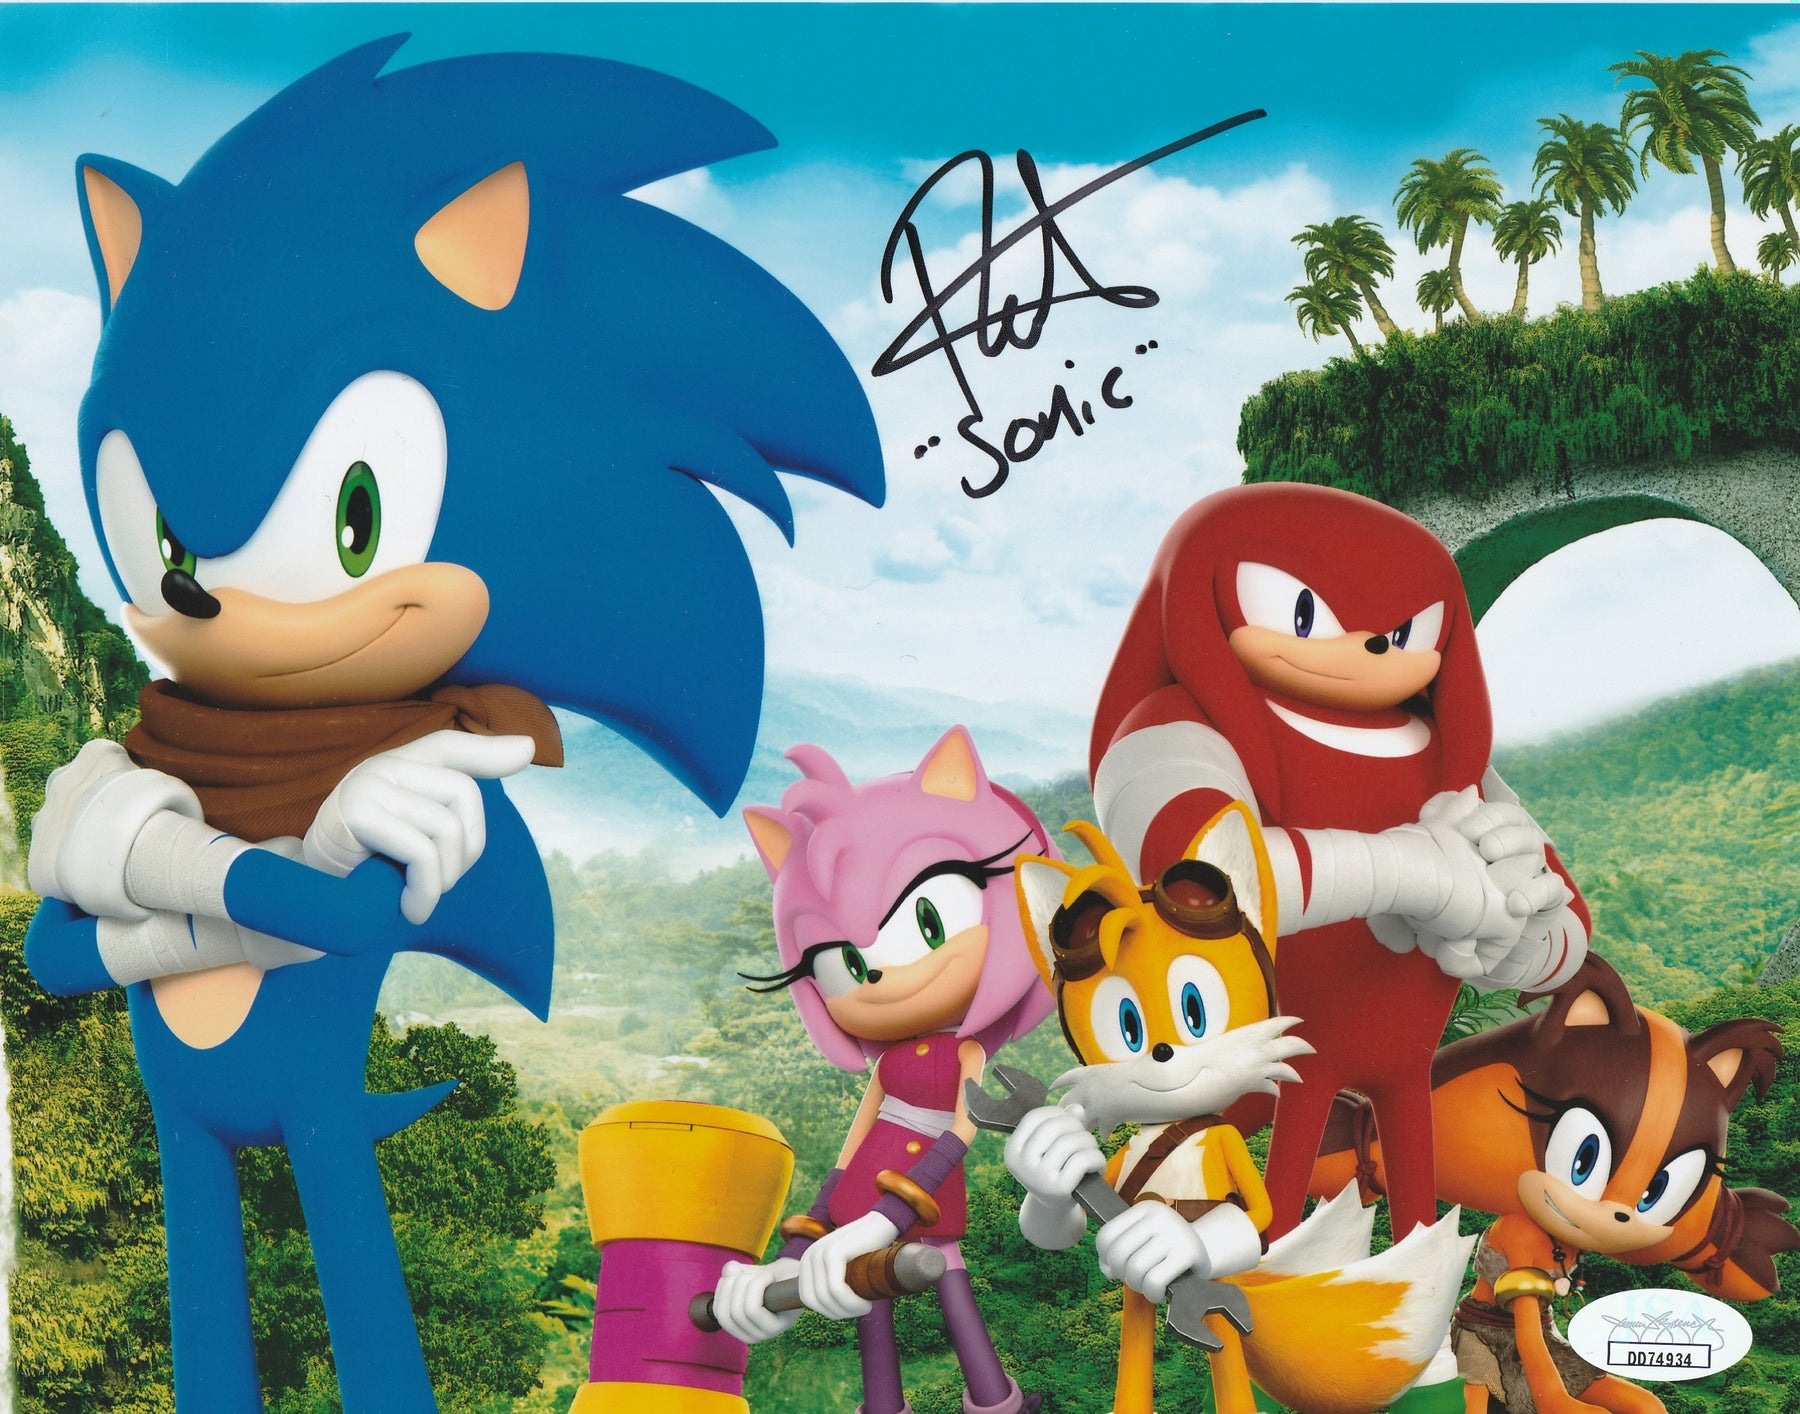 Roger Craig Smith Autograph 8x10 Photo Sonic the Hedgehog Signed JSA COA